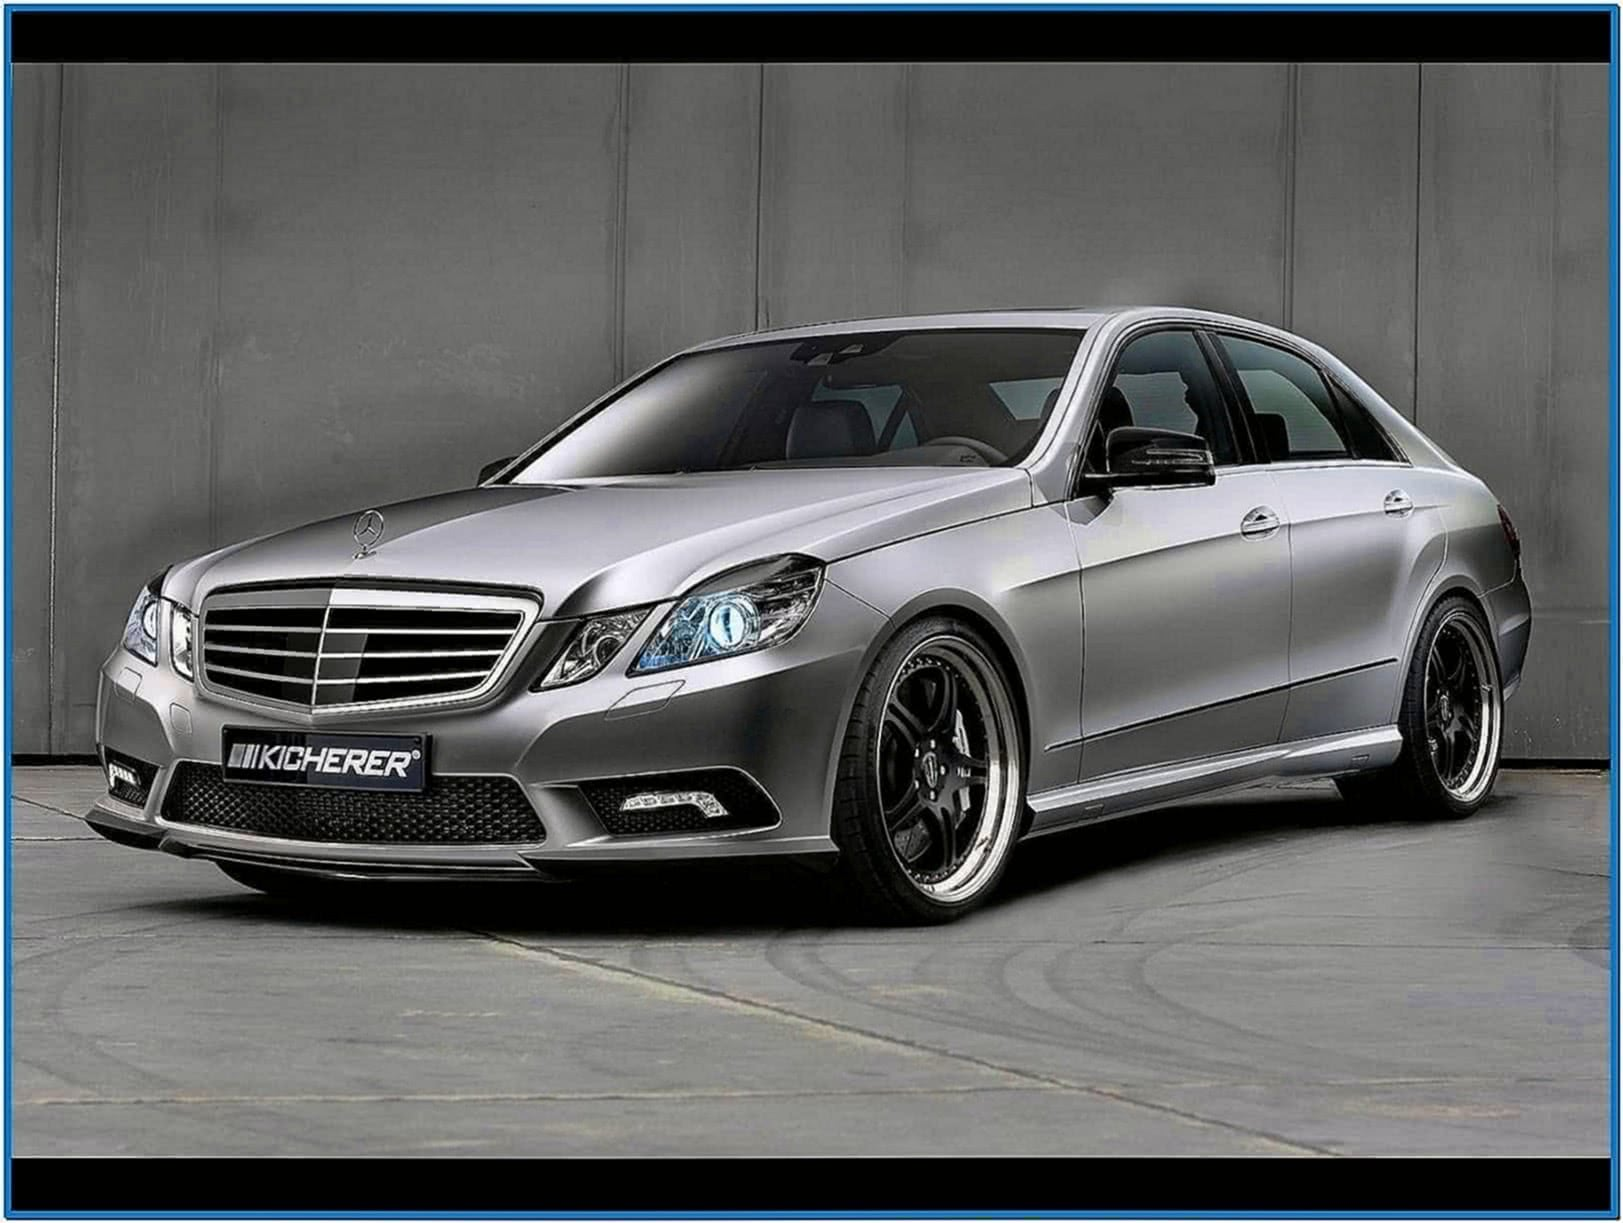 Mercedes Benz E Class Screensaver